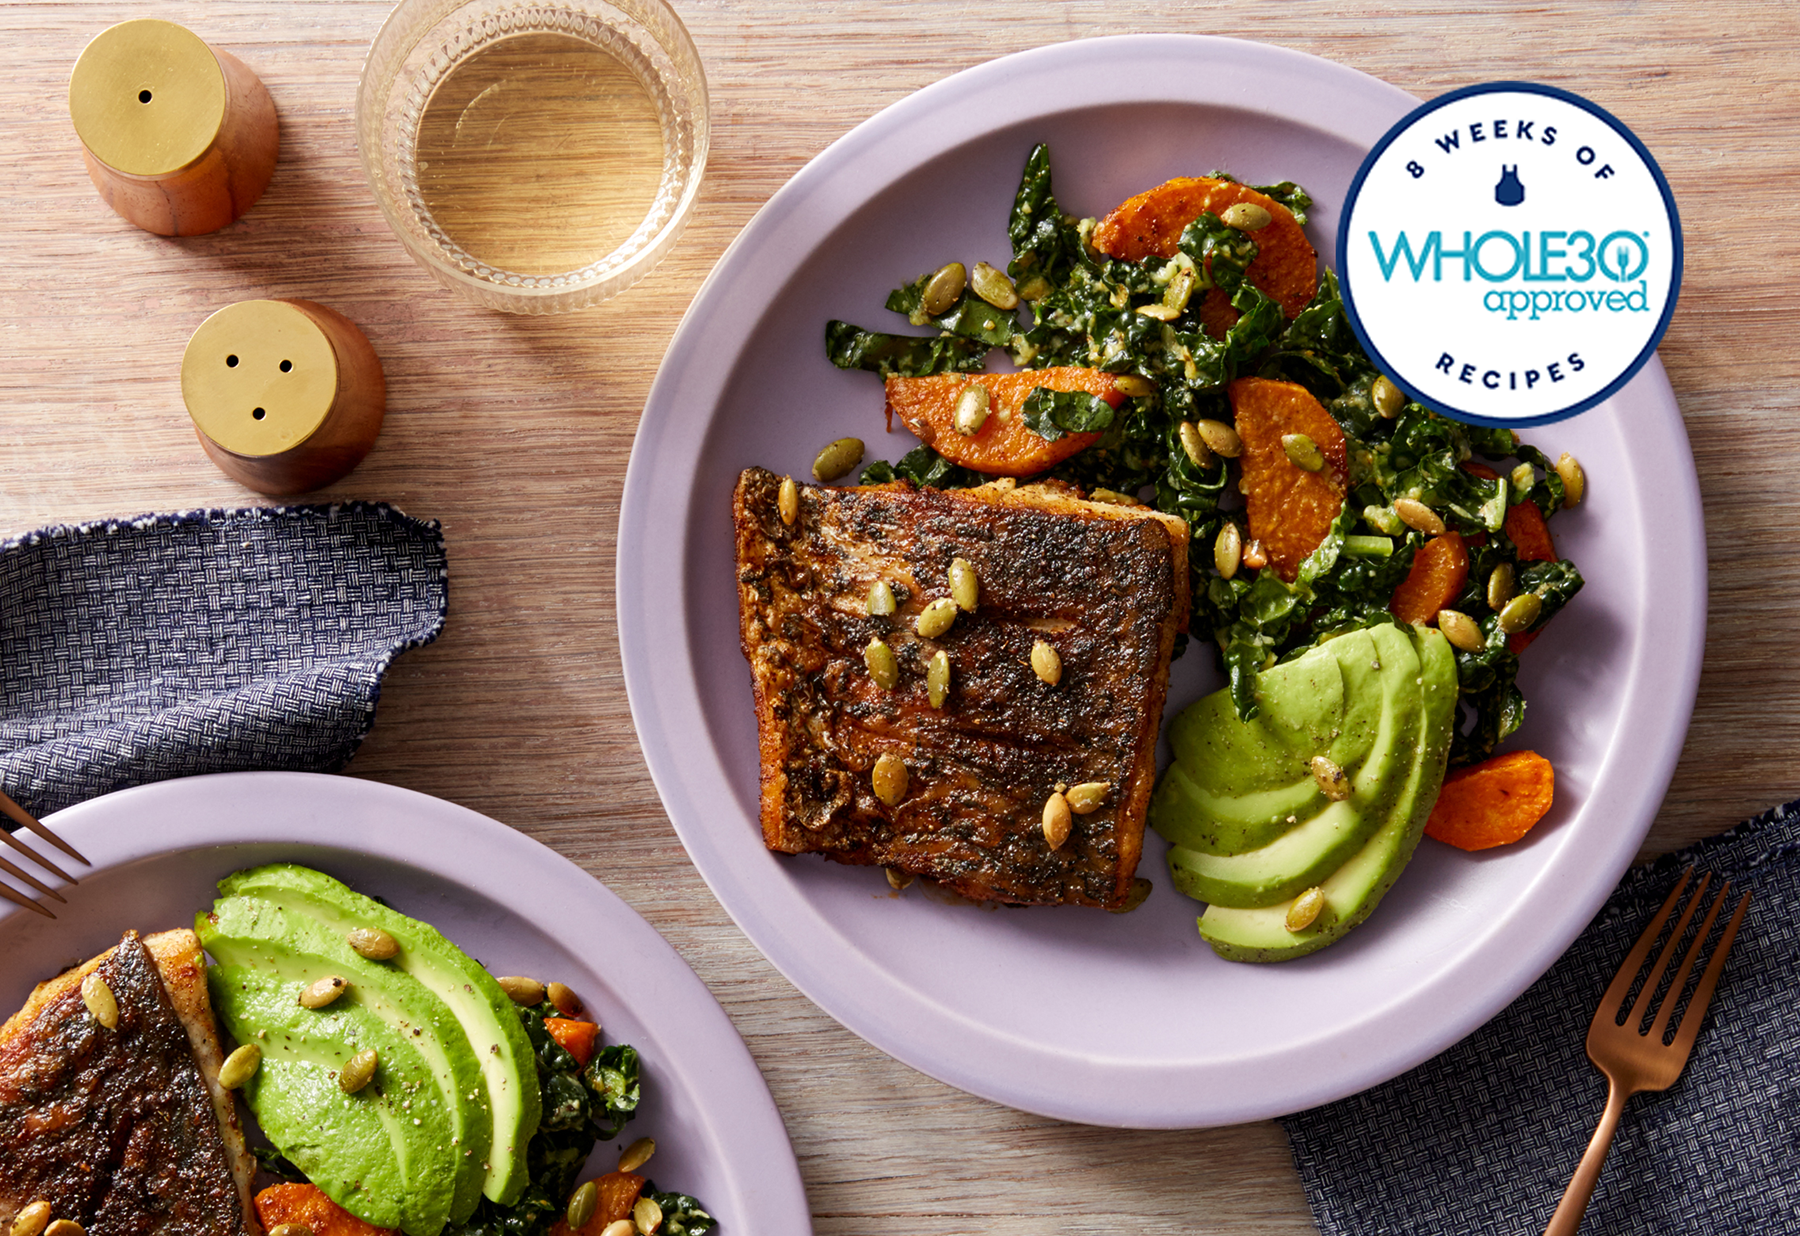 Blue Apron Launches Whole30-Approved Meals